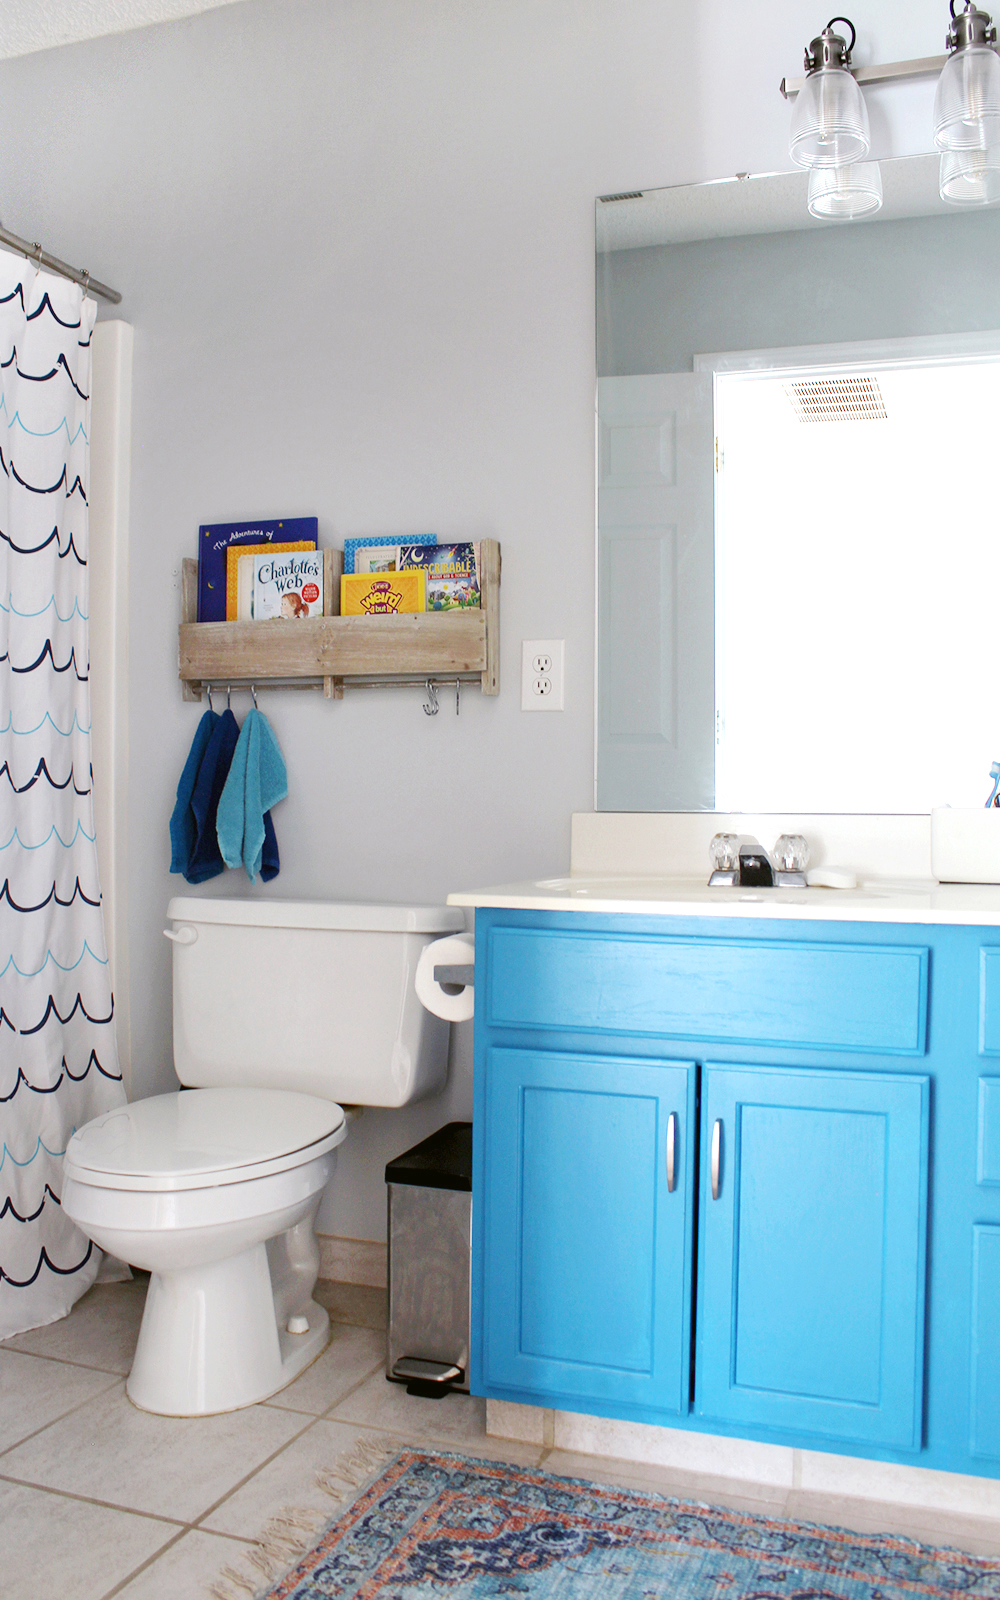 cheerful kid's bathroom with SW Misty walls and bright blue cabinet